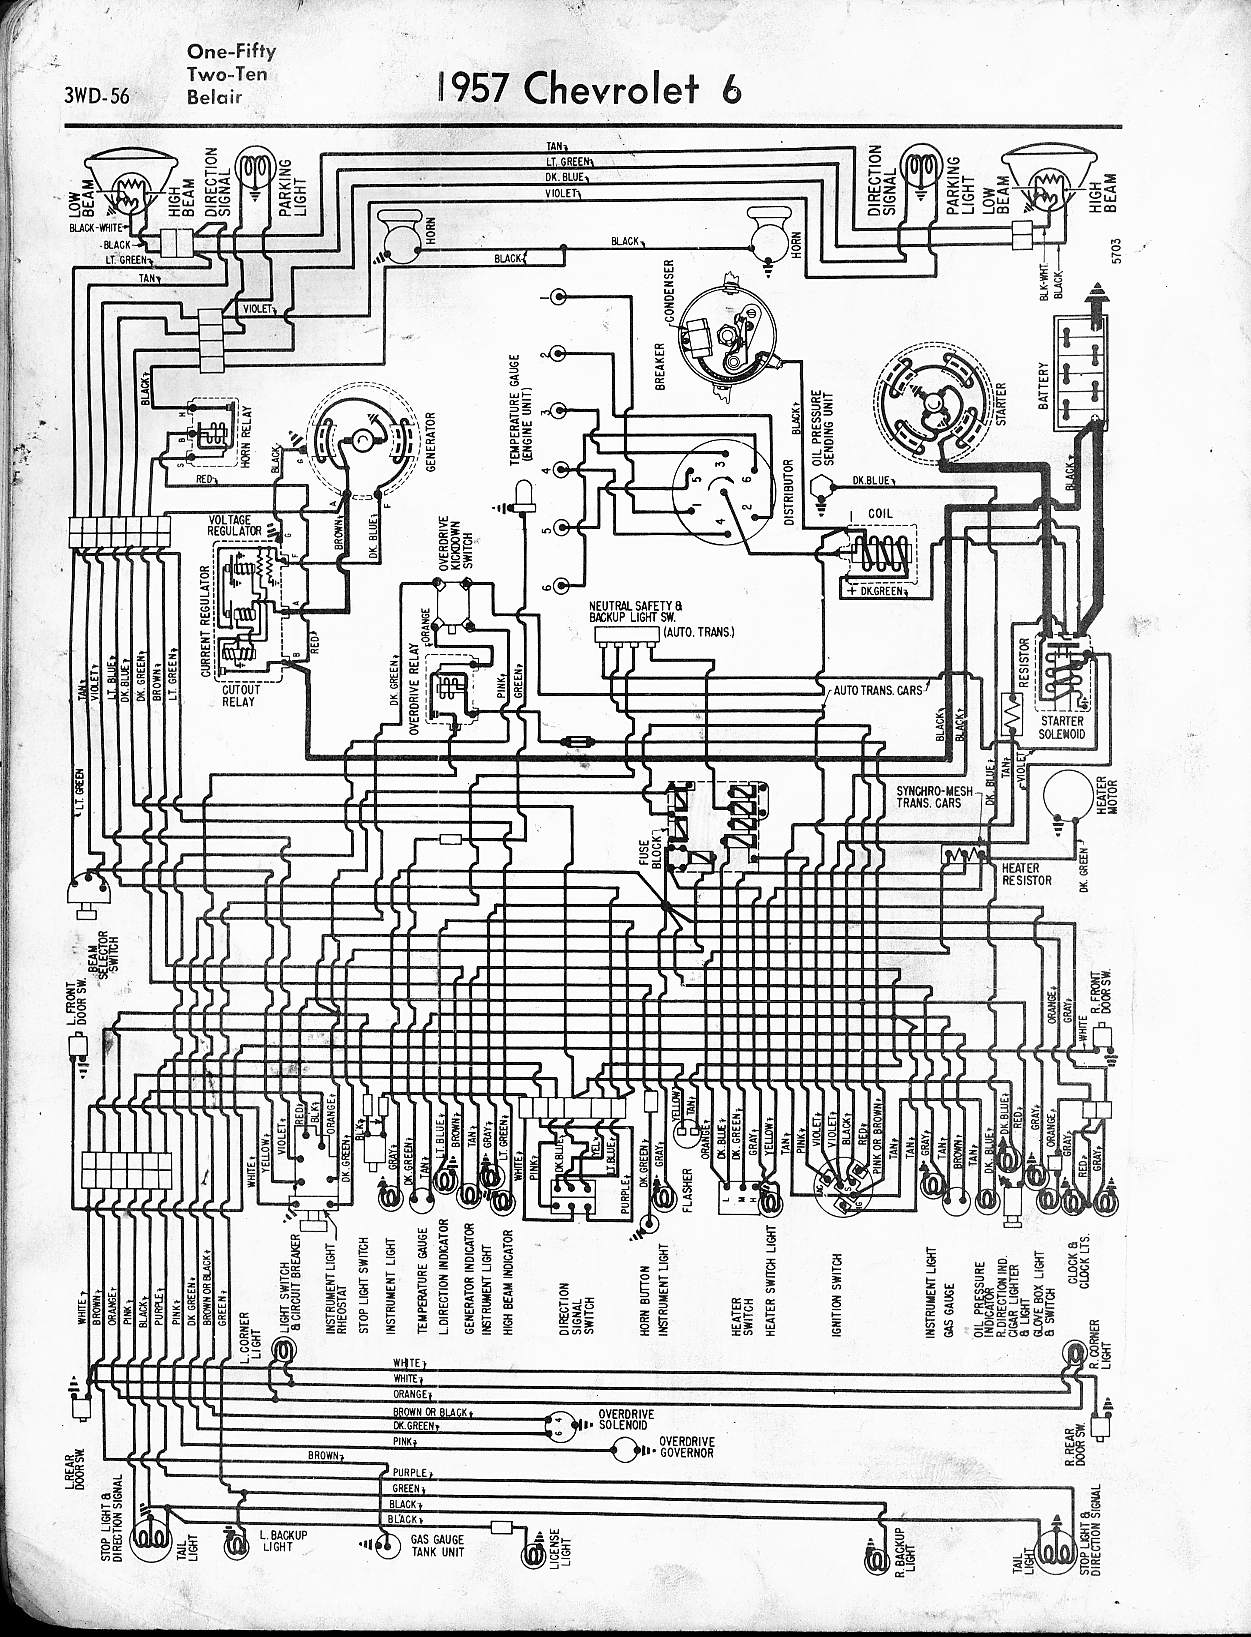 57 65 Chevy Wiring Diagrams 10 Painless Harness One Fifty Two Ten Belair